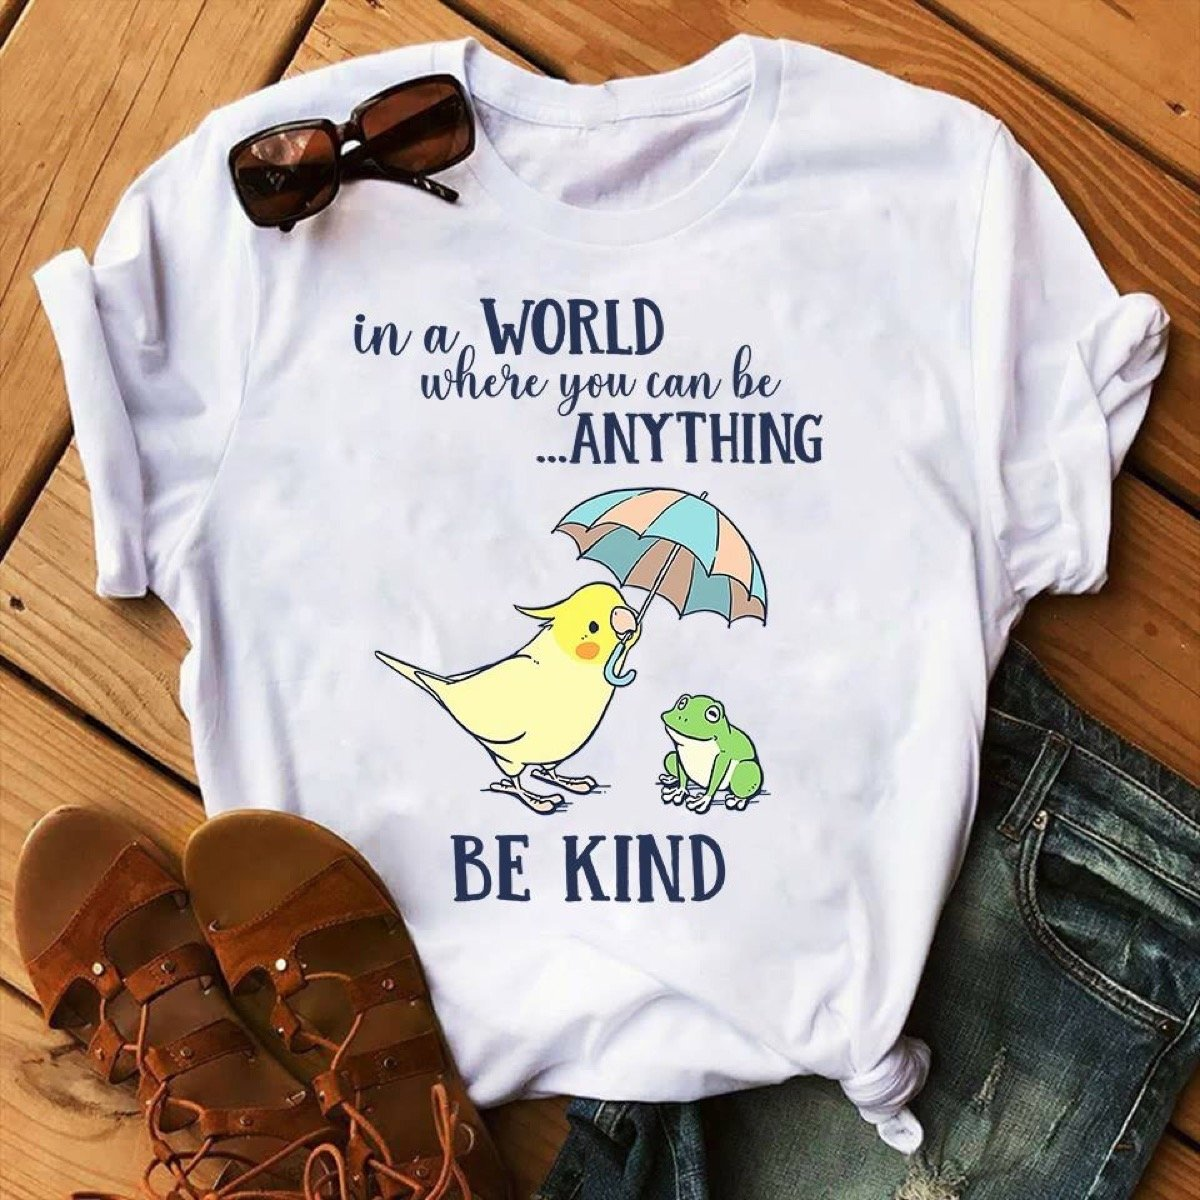 Free as a Bird T-shirt 45